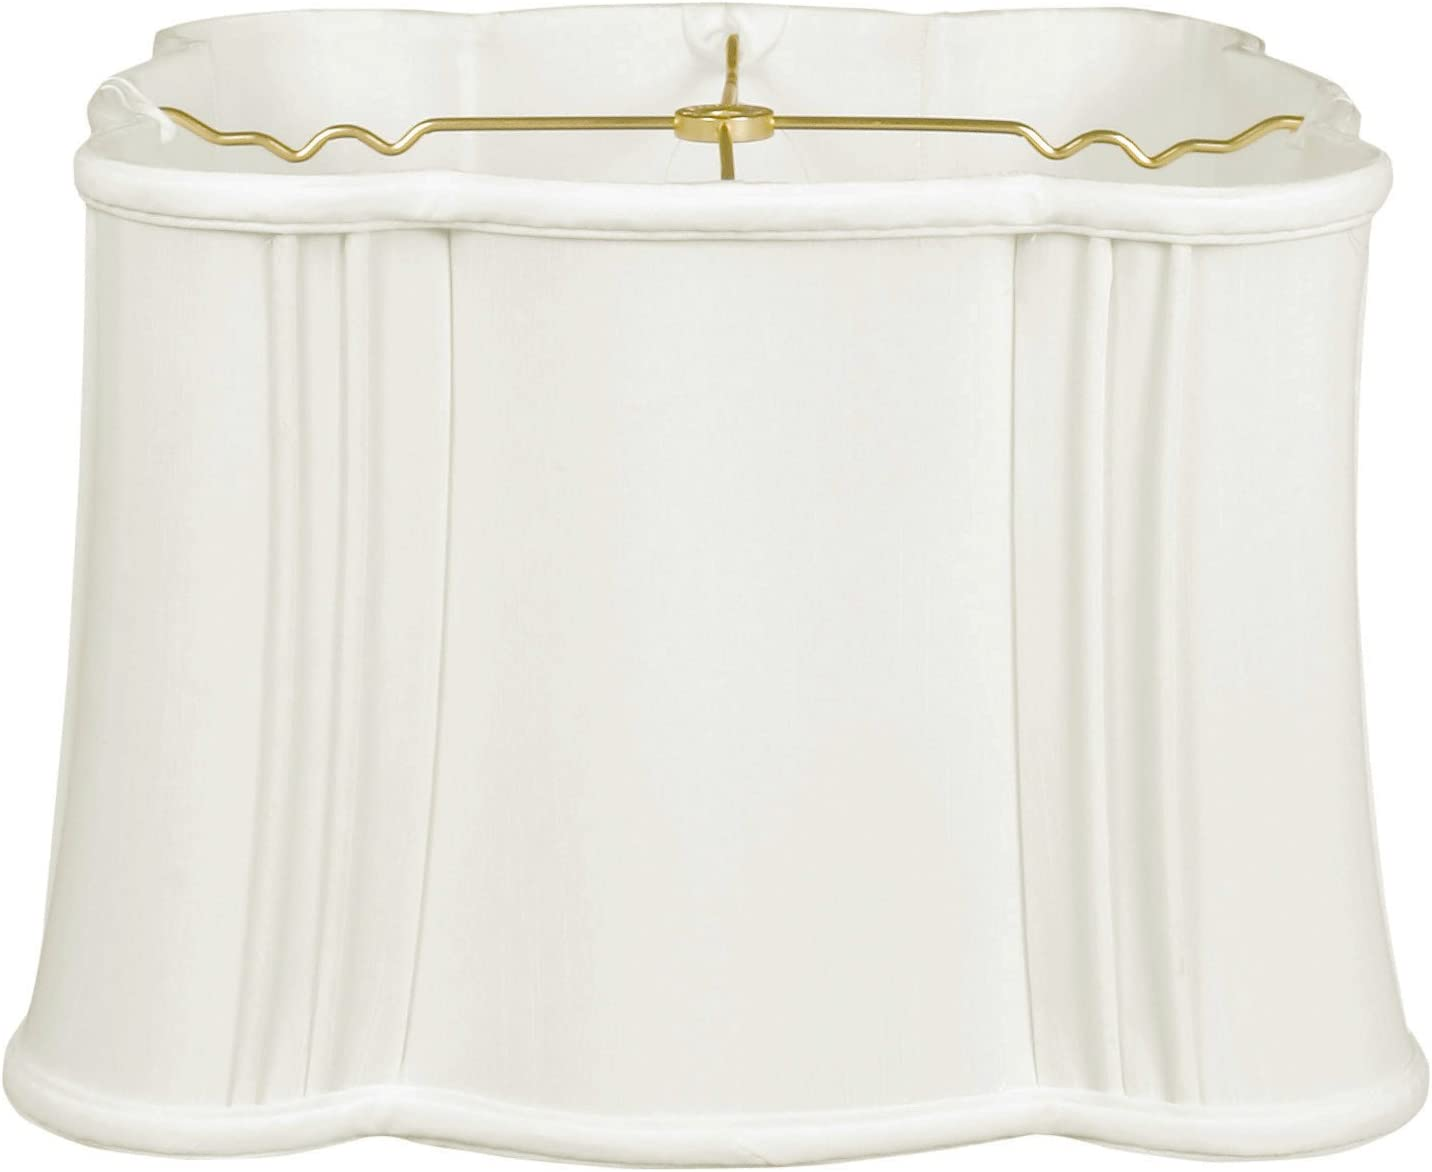 Royal Designs, Inc BS-401-17WH lampshades, 16 x 17 x 10.5, White